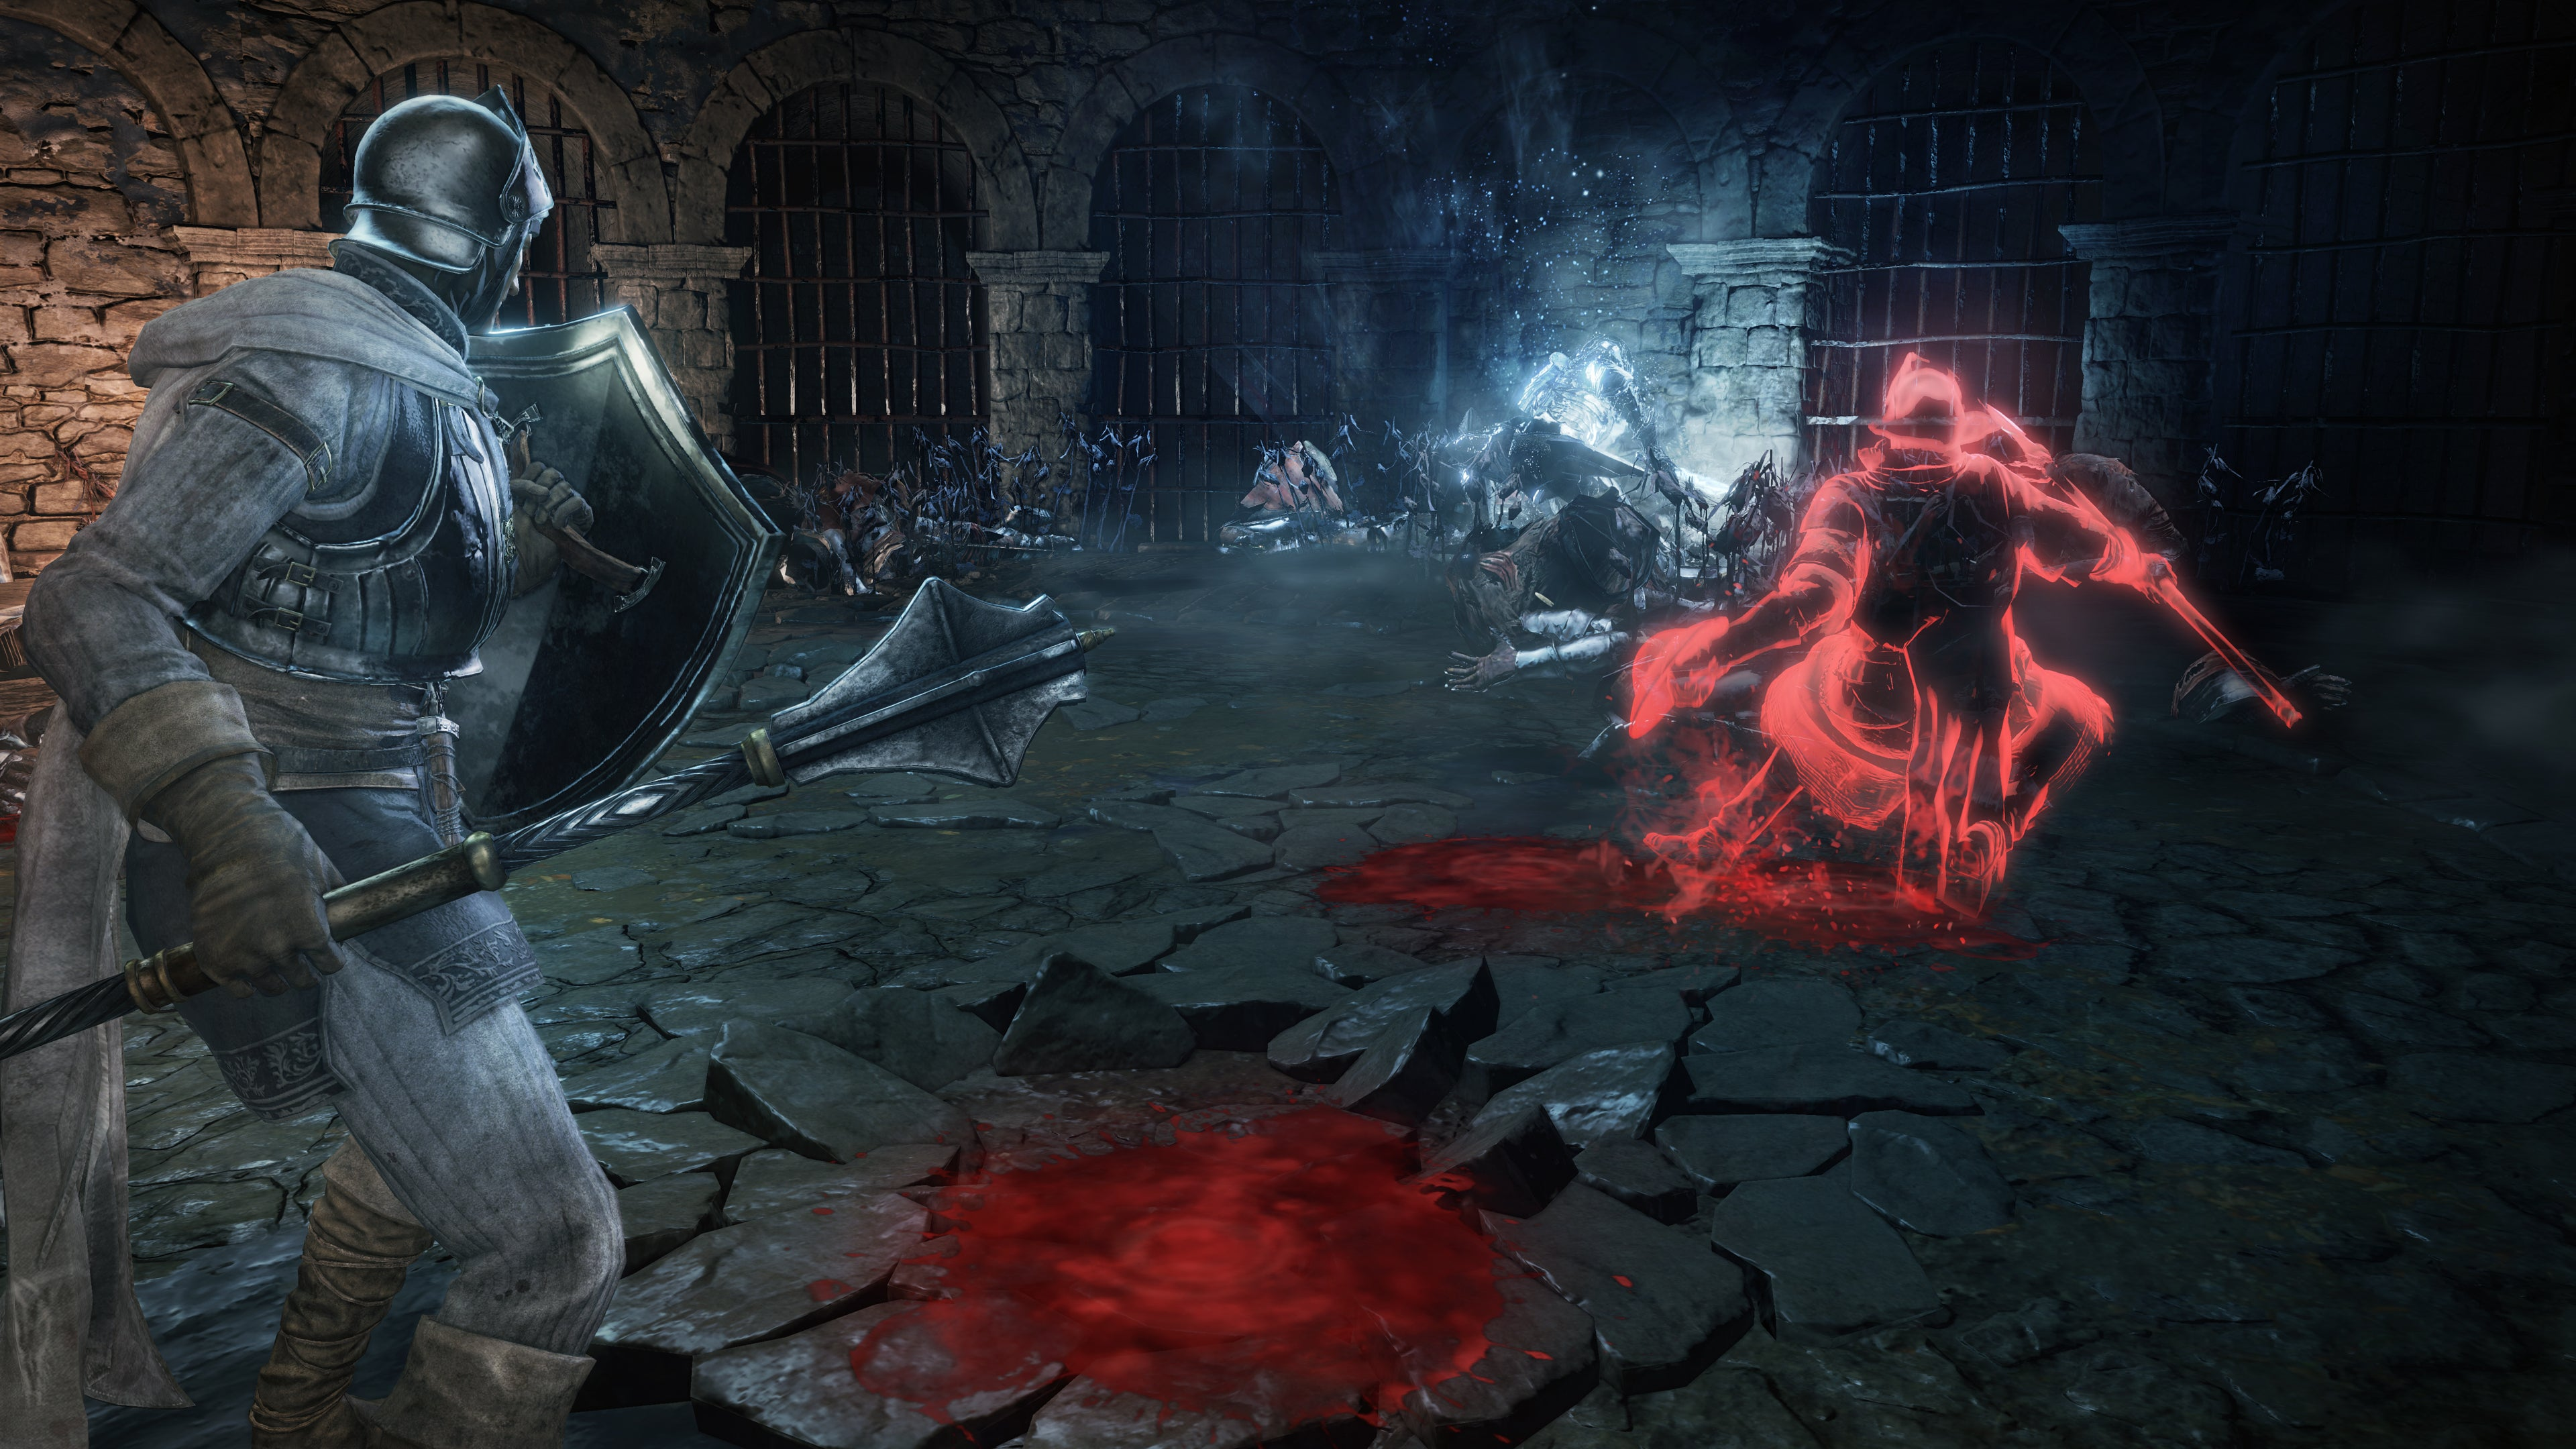 Bandai Namco Clamping Down On Dark Souls 3 Streaming, But It's Too Late